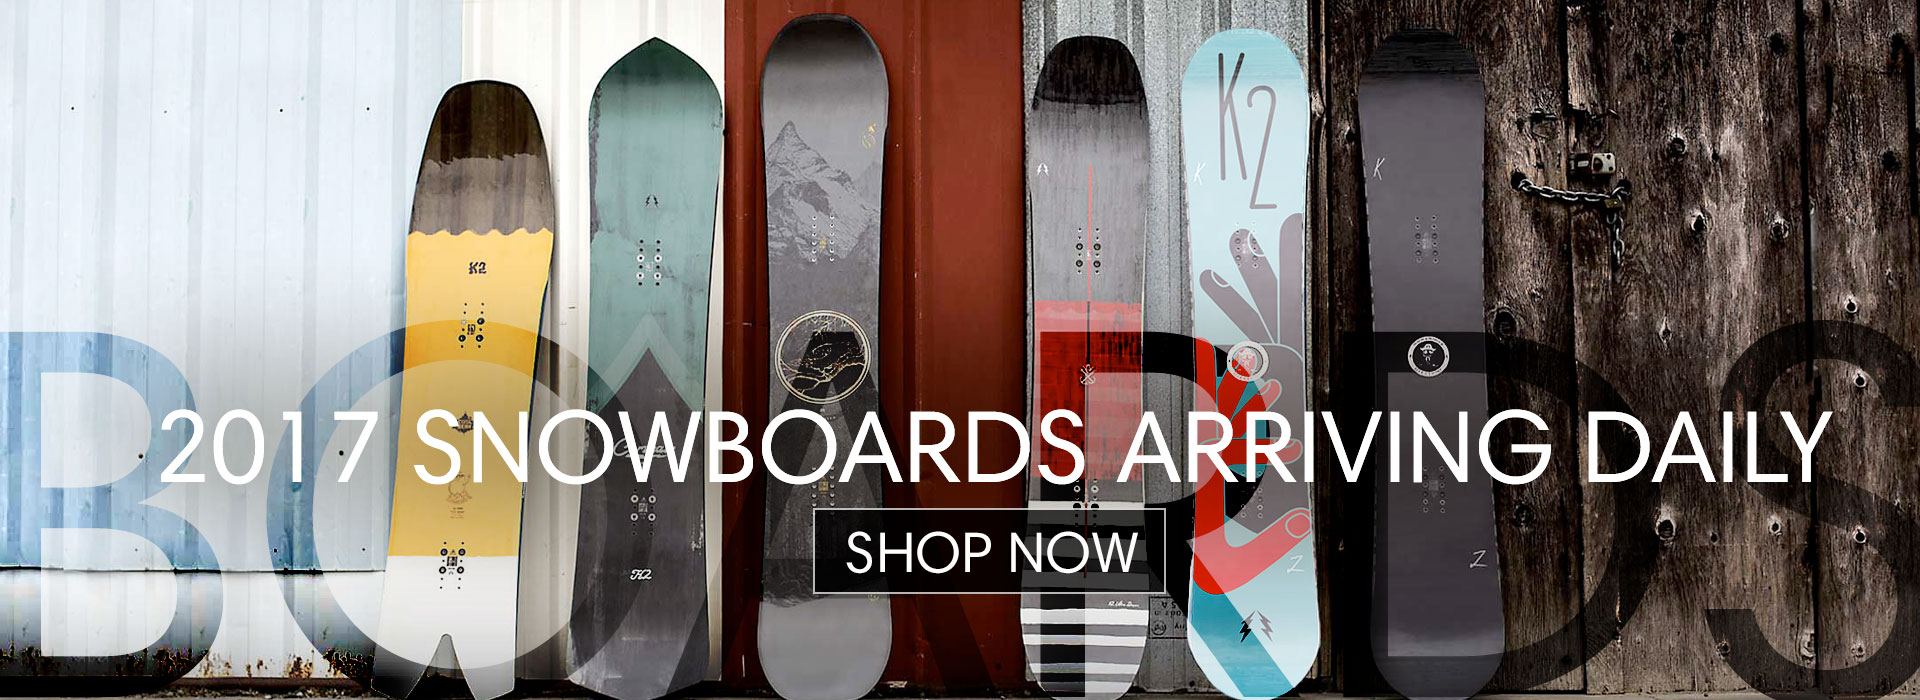 2017 Snowboards